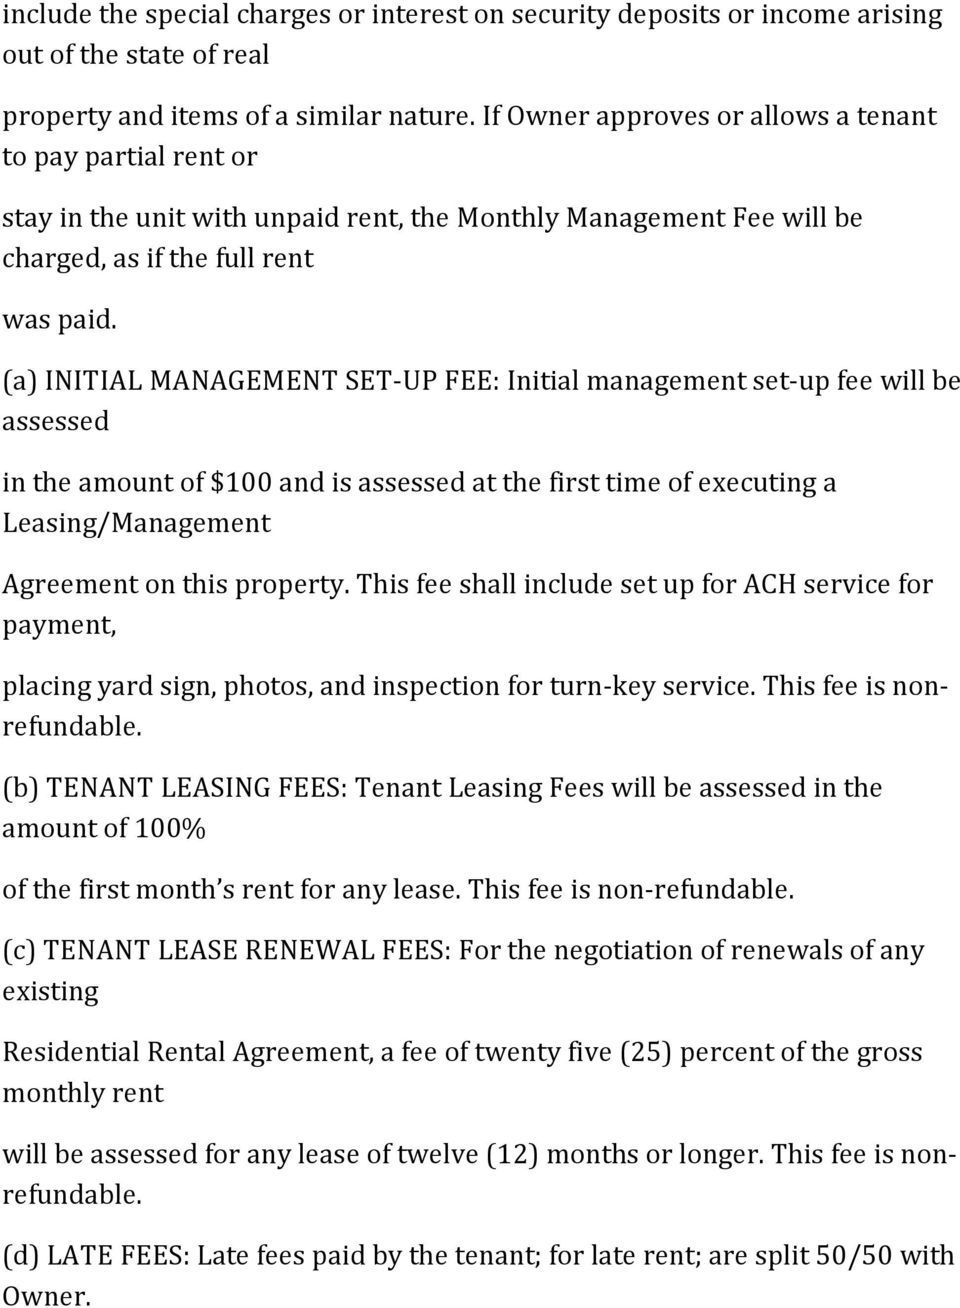 (a) INITIAL MANAGEMENT SET-UP FEE: Initial management set-up fee will be assessed in the amount of $100 and is assessed at the first time of executing a Leasing/Management Agreement on this property.